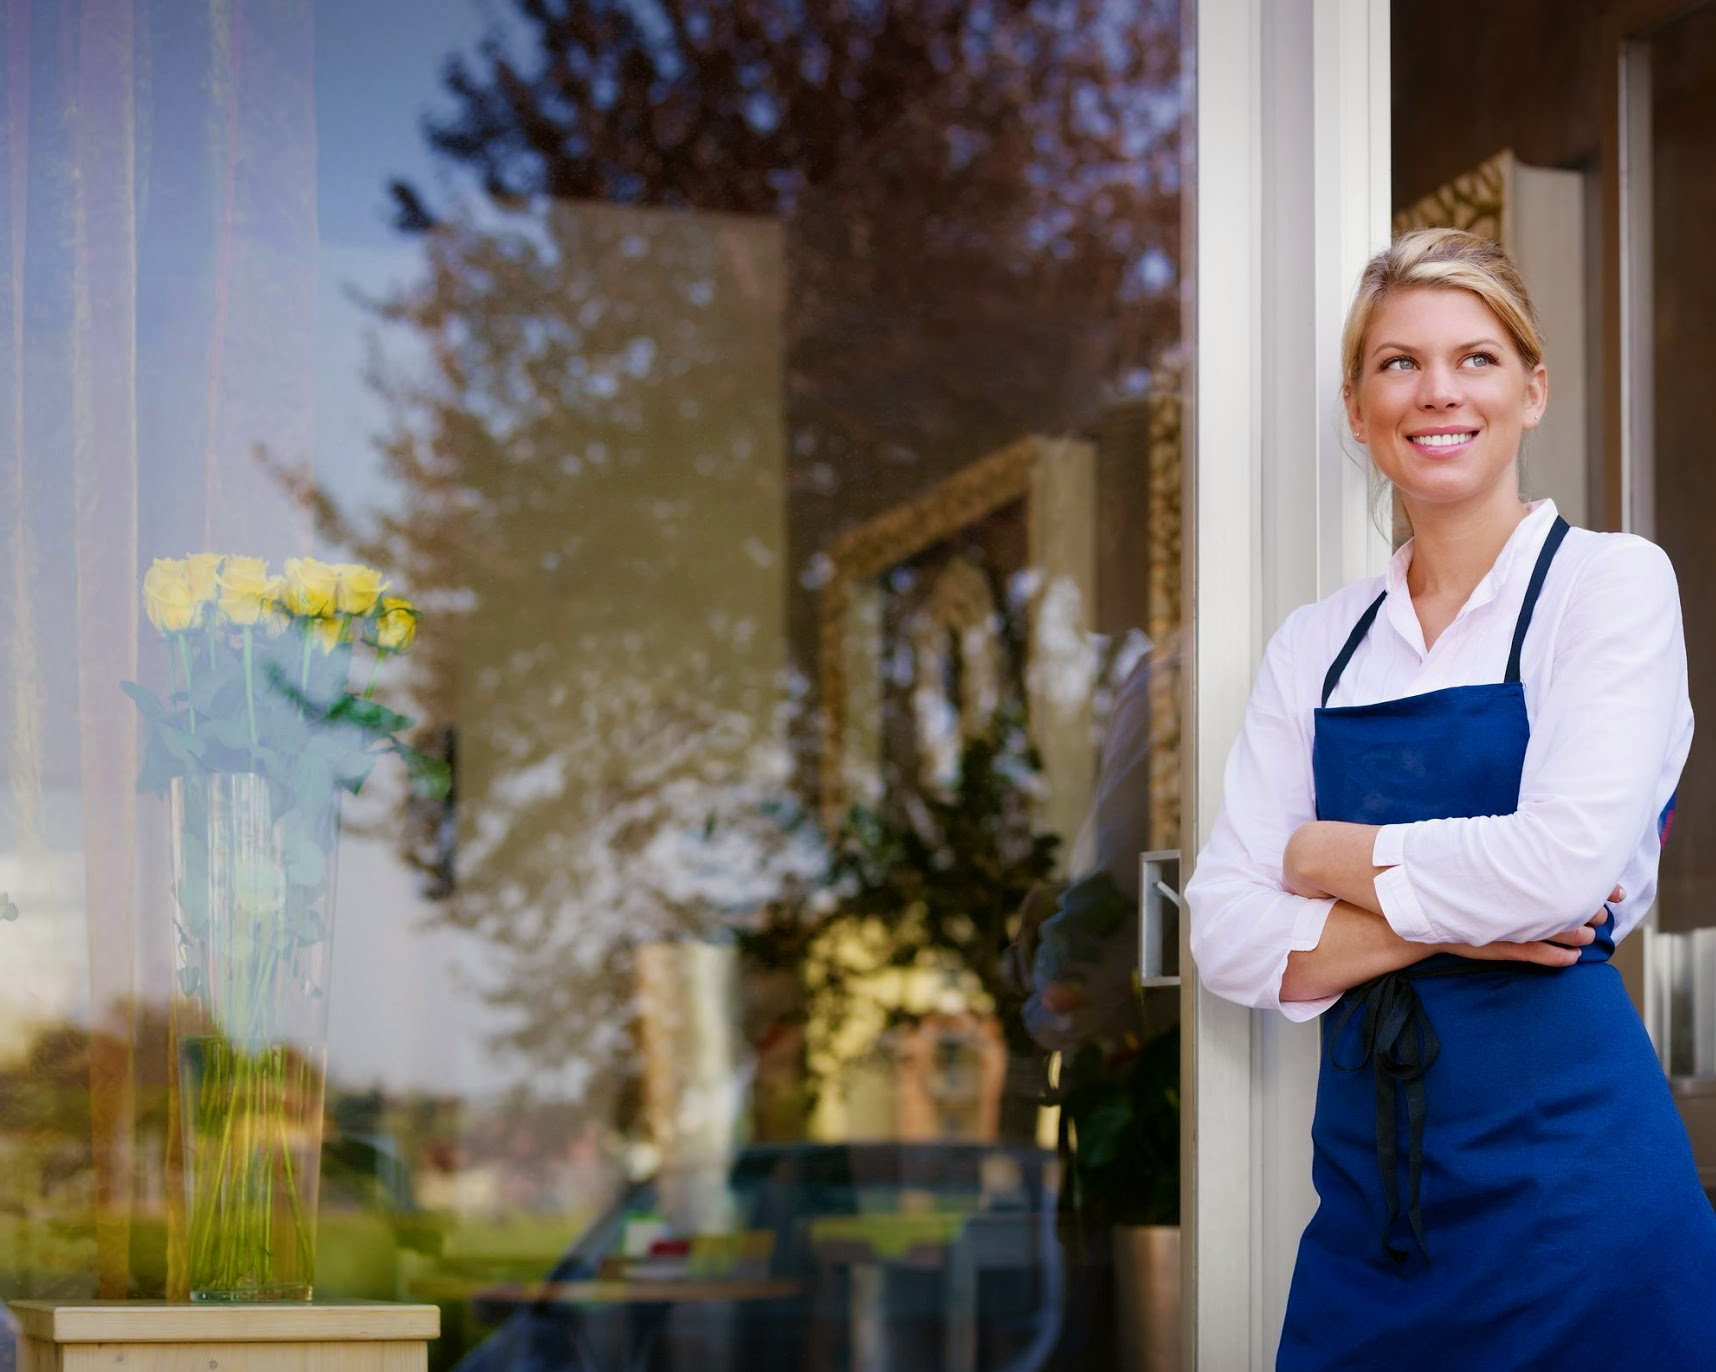 Woman-business-owner-outside-r